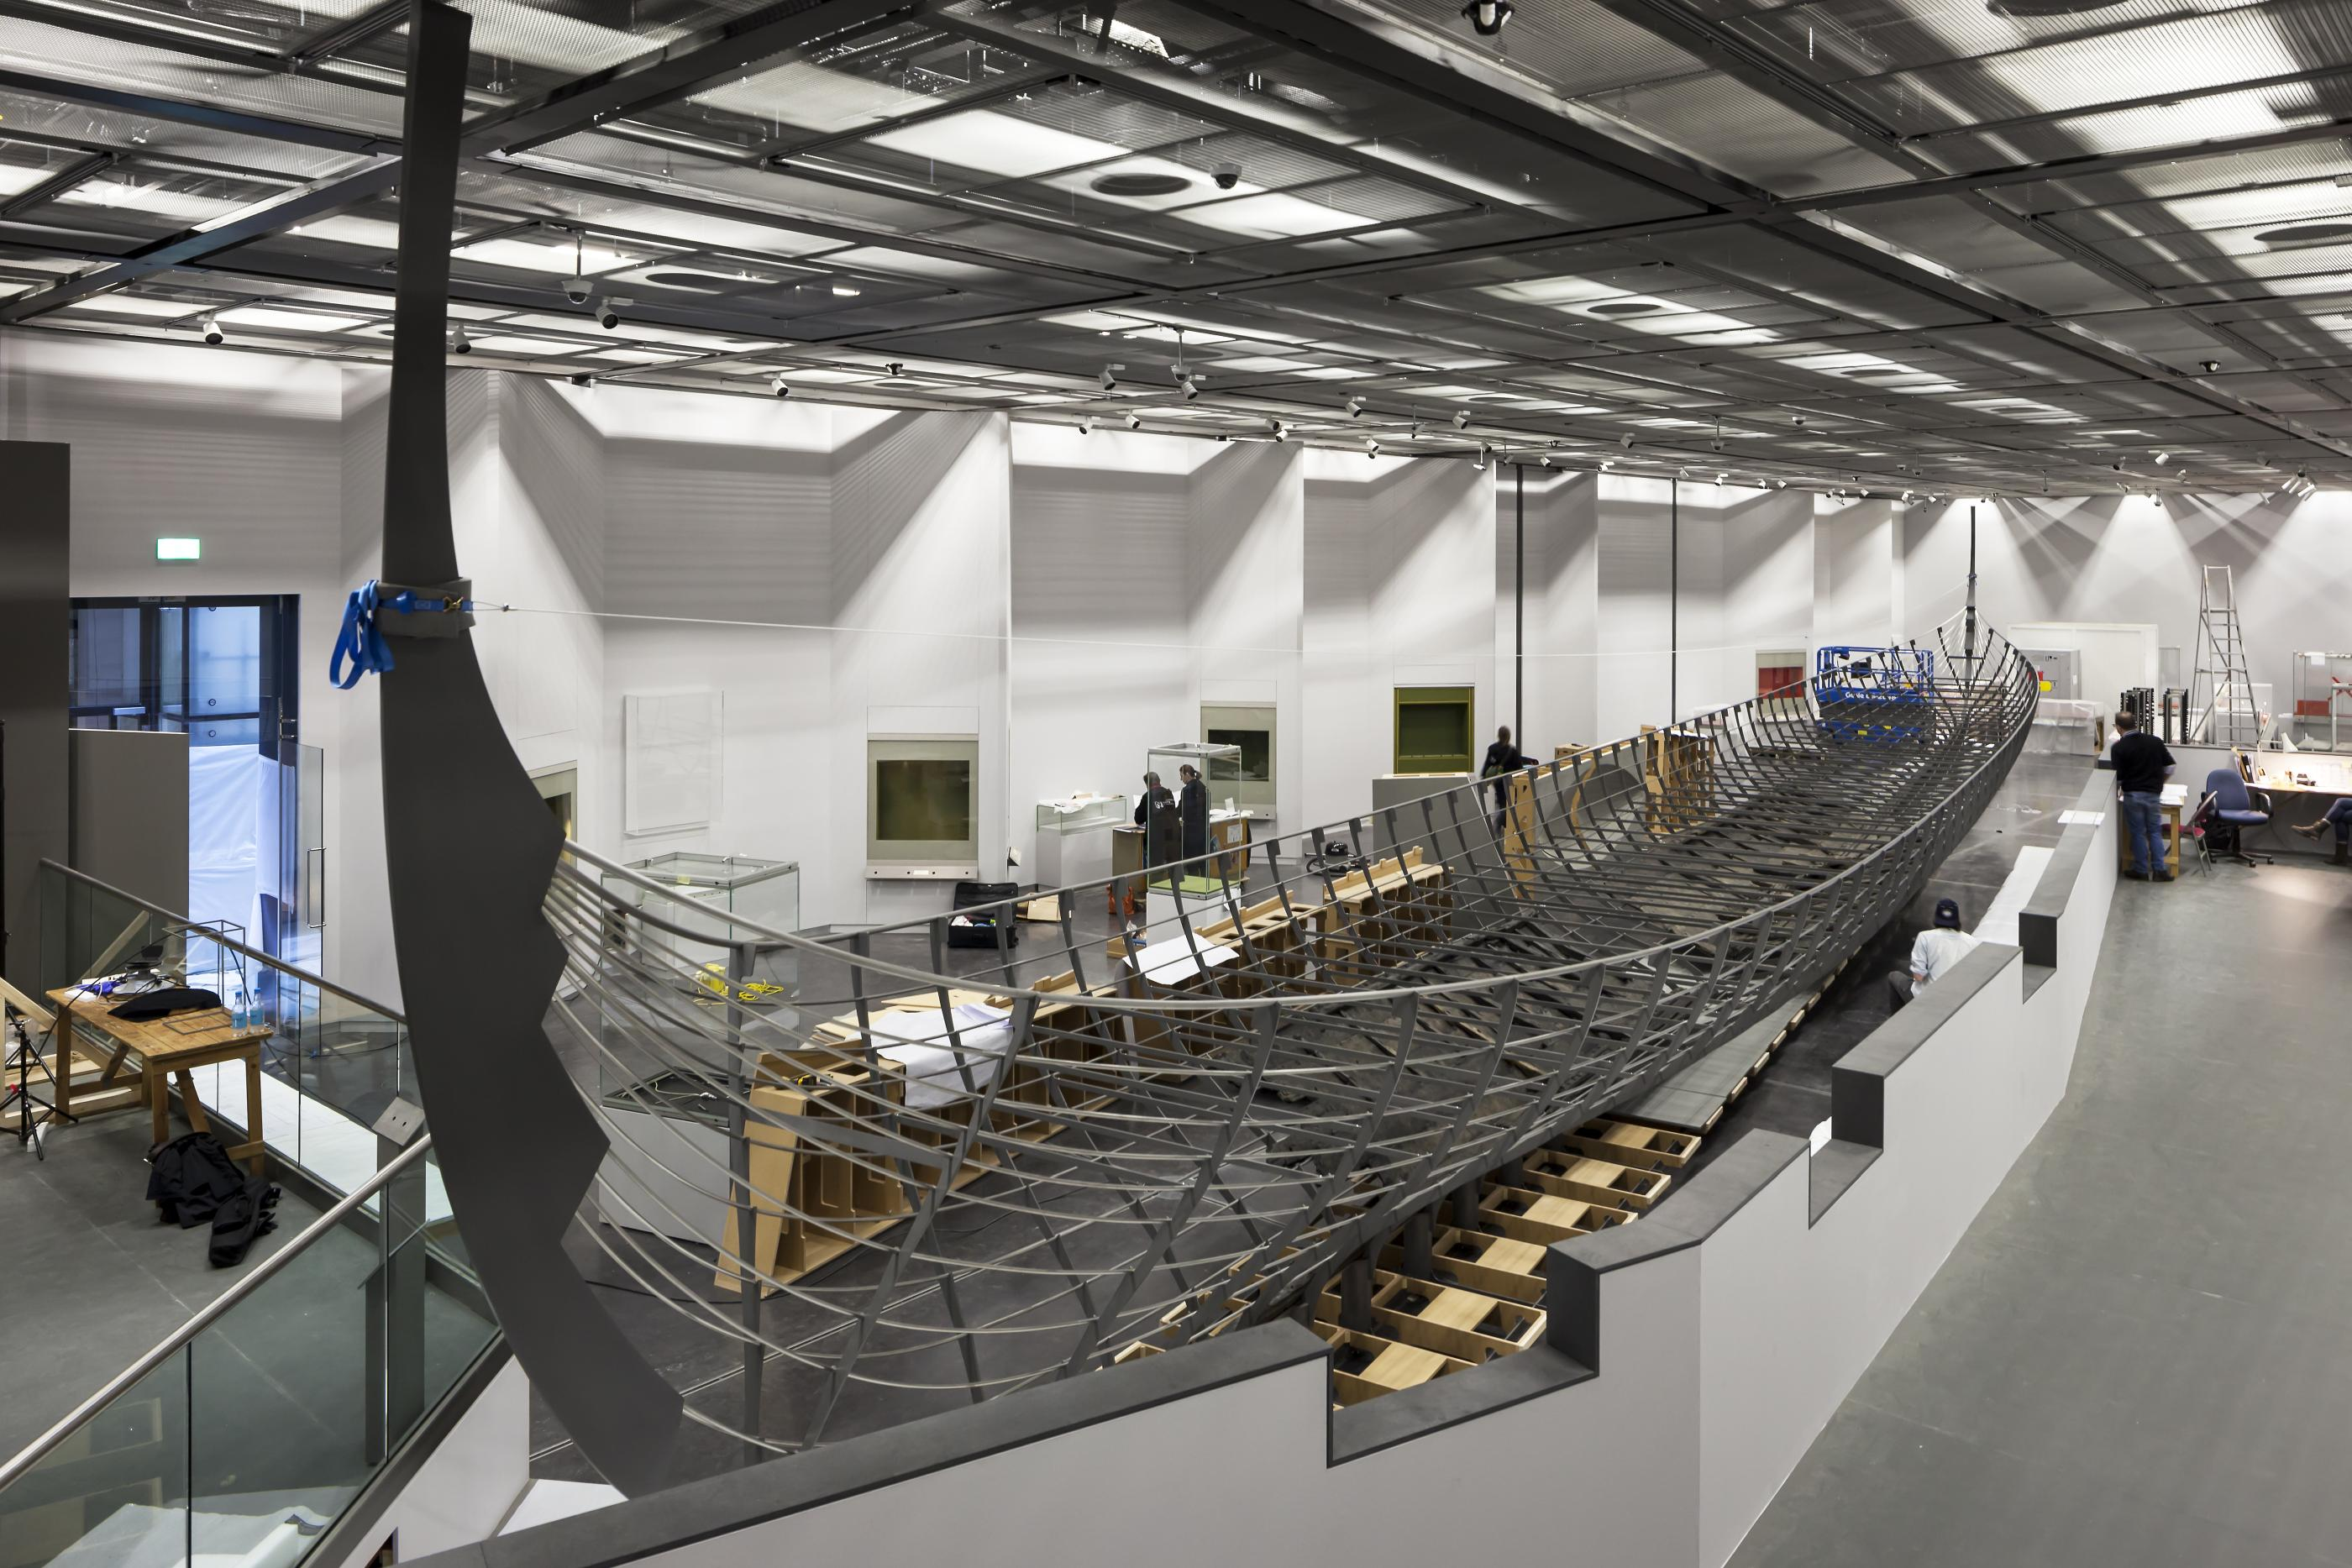 The installation of Roskilde 6 at the British Museum in the Sainsbury Exhibitions Gallery, January 2014 © Paul Raftery